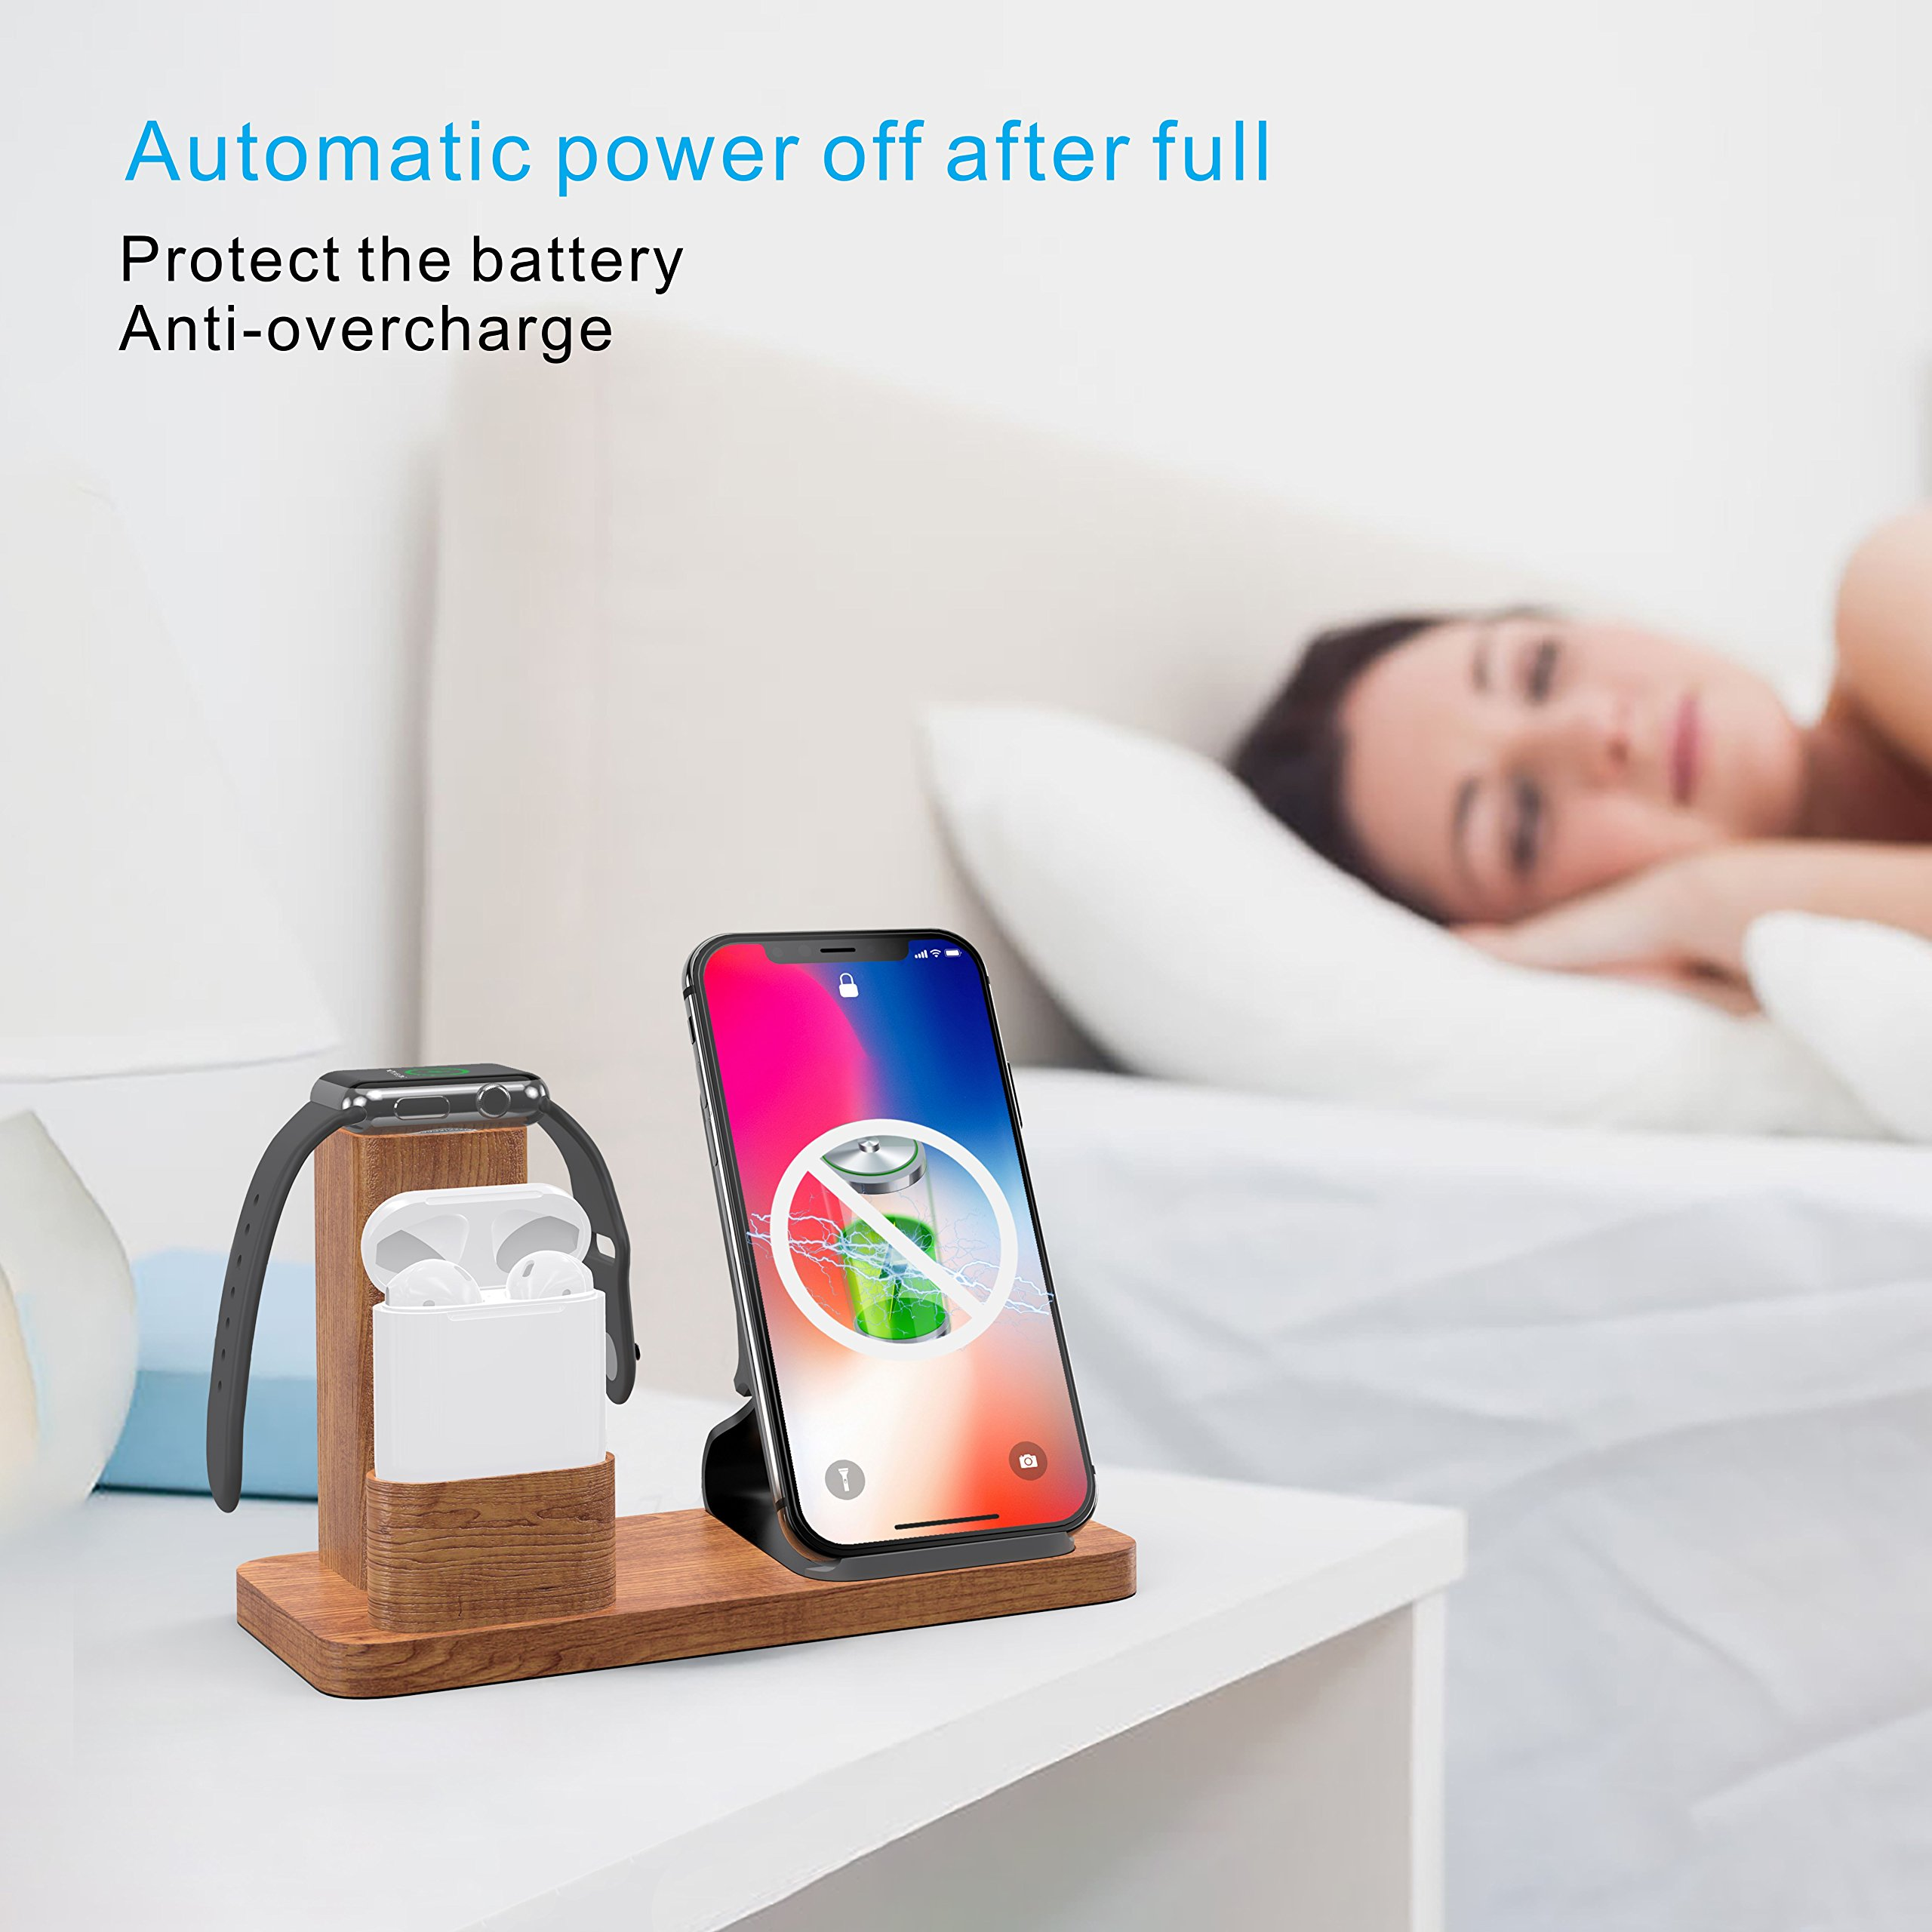 Wireless Charger Stand Apple Watch Airpods Charging Station, OLVOO 3 in 1 Wood Charging Docks for AirPods/Apple Watch Series 3/2/1 iPhone X/8/8 Plus Samsung Note 8/S9/S9 Plus by OLVOO (Image #3)